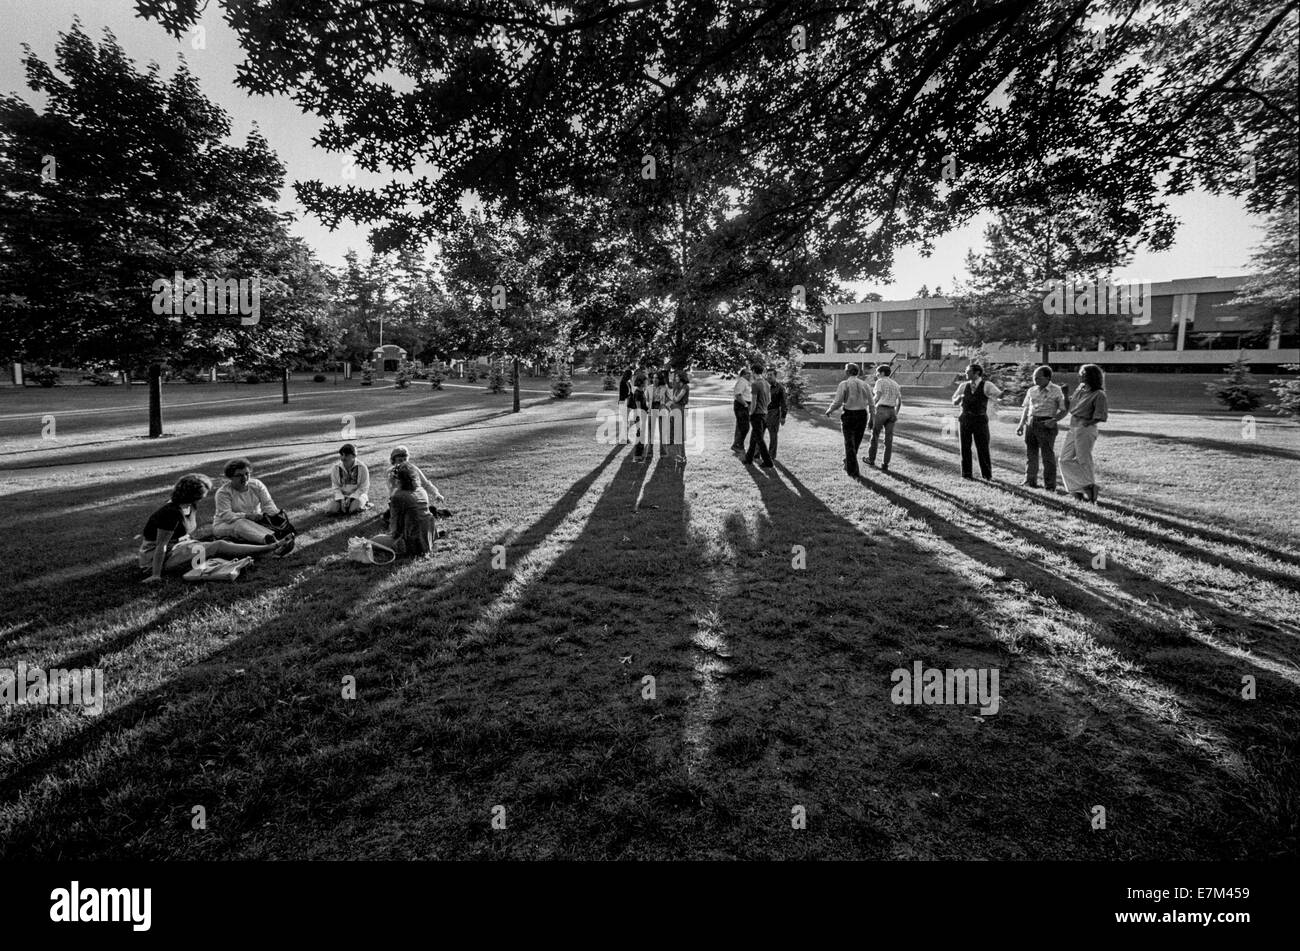 College students throw long shadows as they wait in the evening sun for their classes on the campus of Framingham - Stock Image